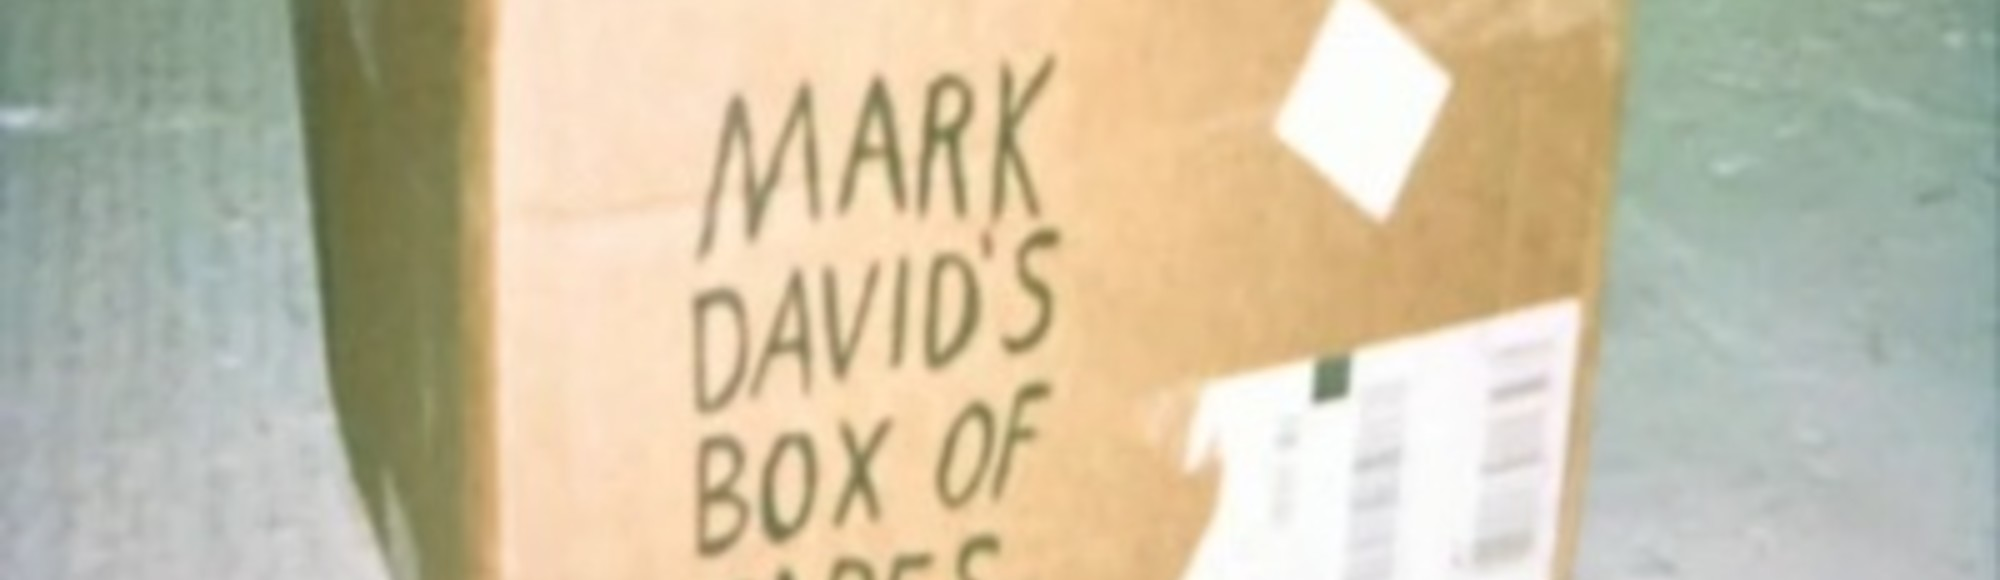 Mark David's Box of Tapes